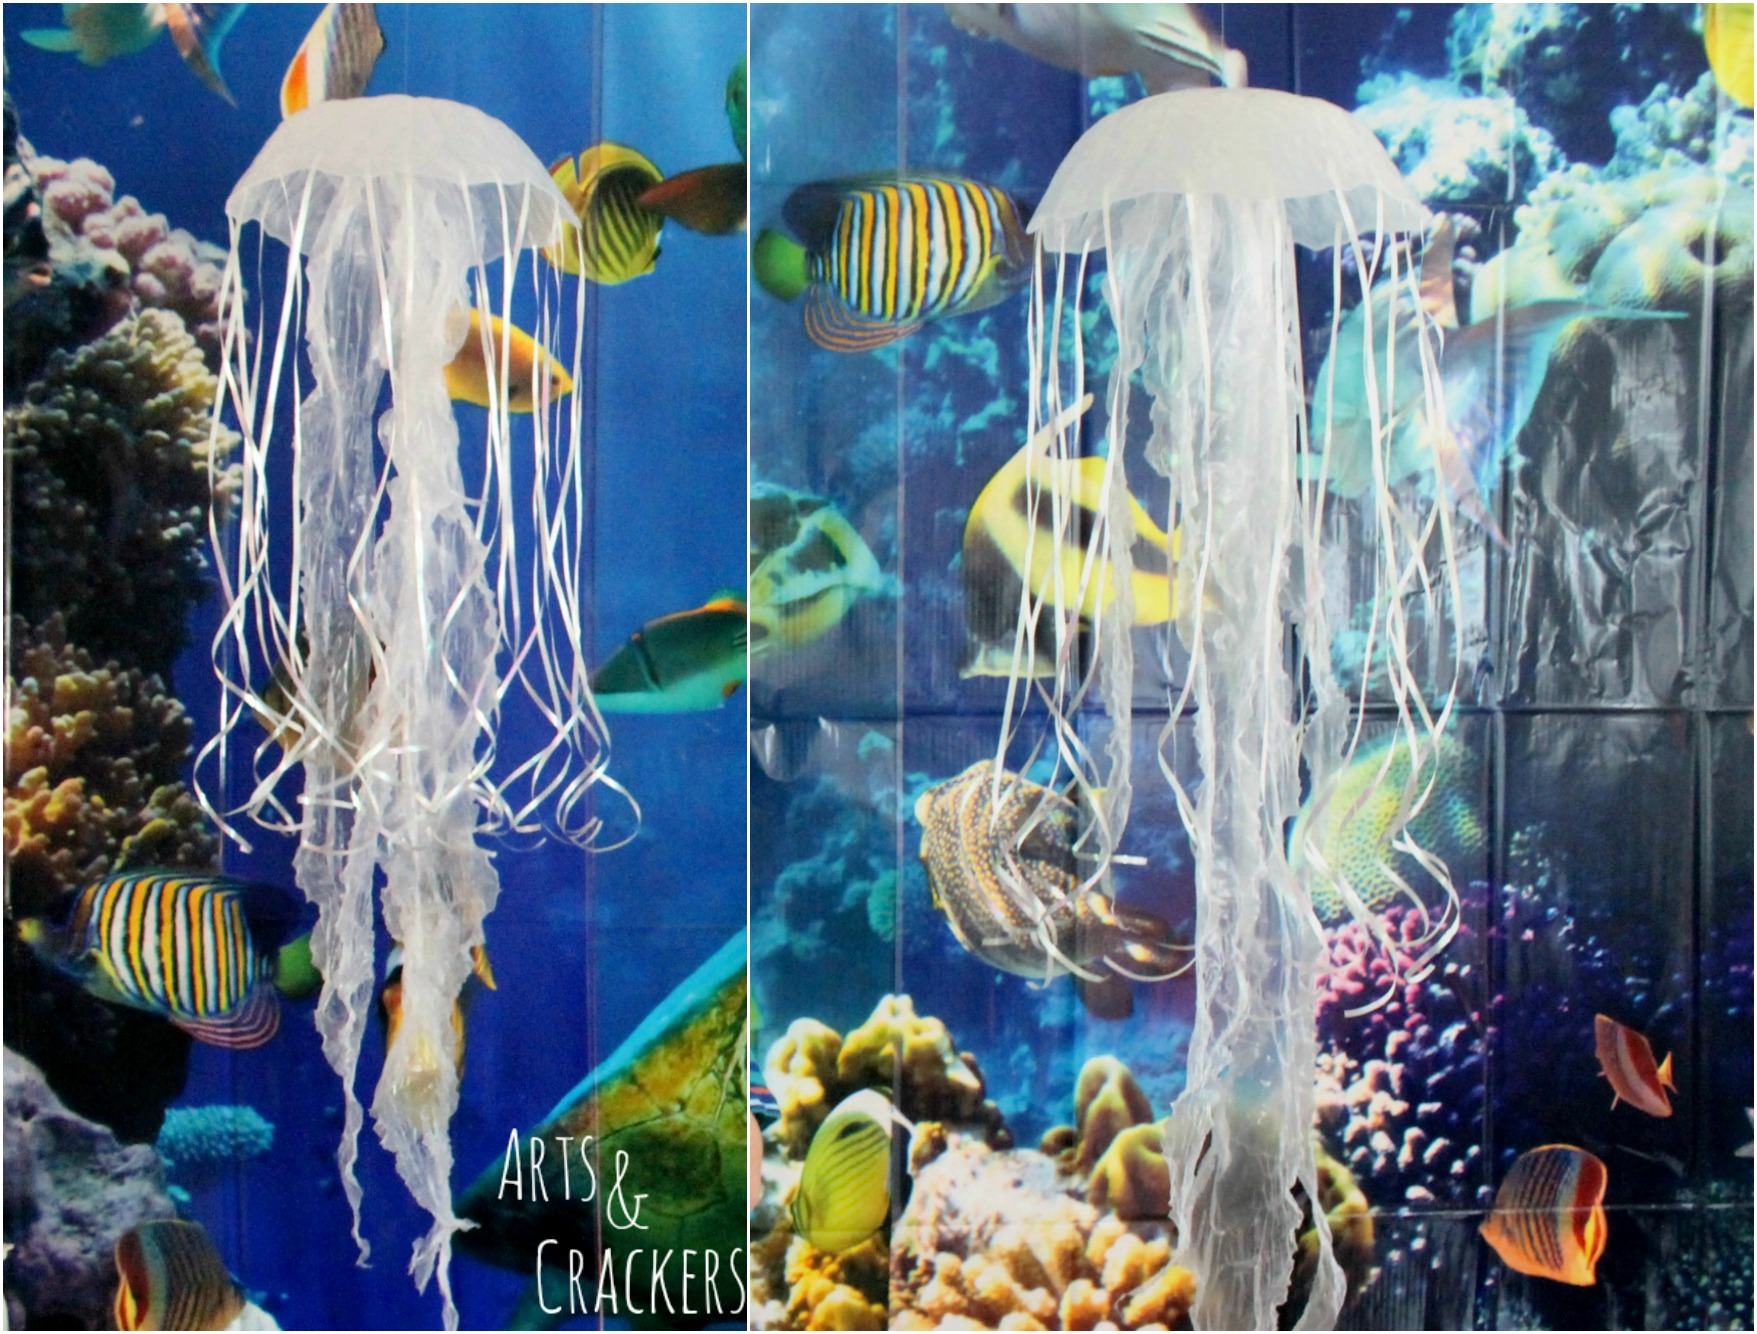 Diy Jellyfish Decorations Diy Hanging Jellyfish Decoration Ocean Themed Party Decor Arts